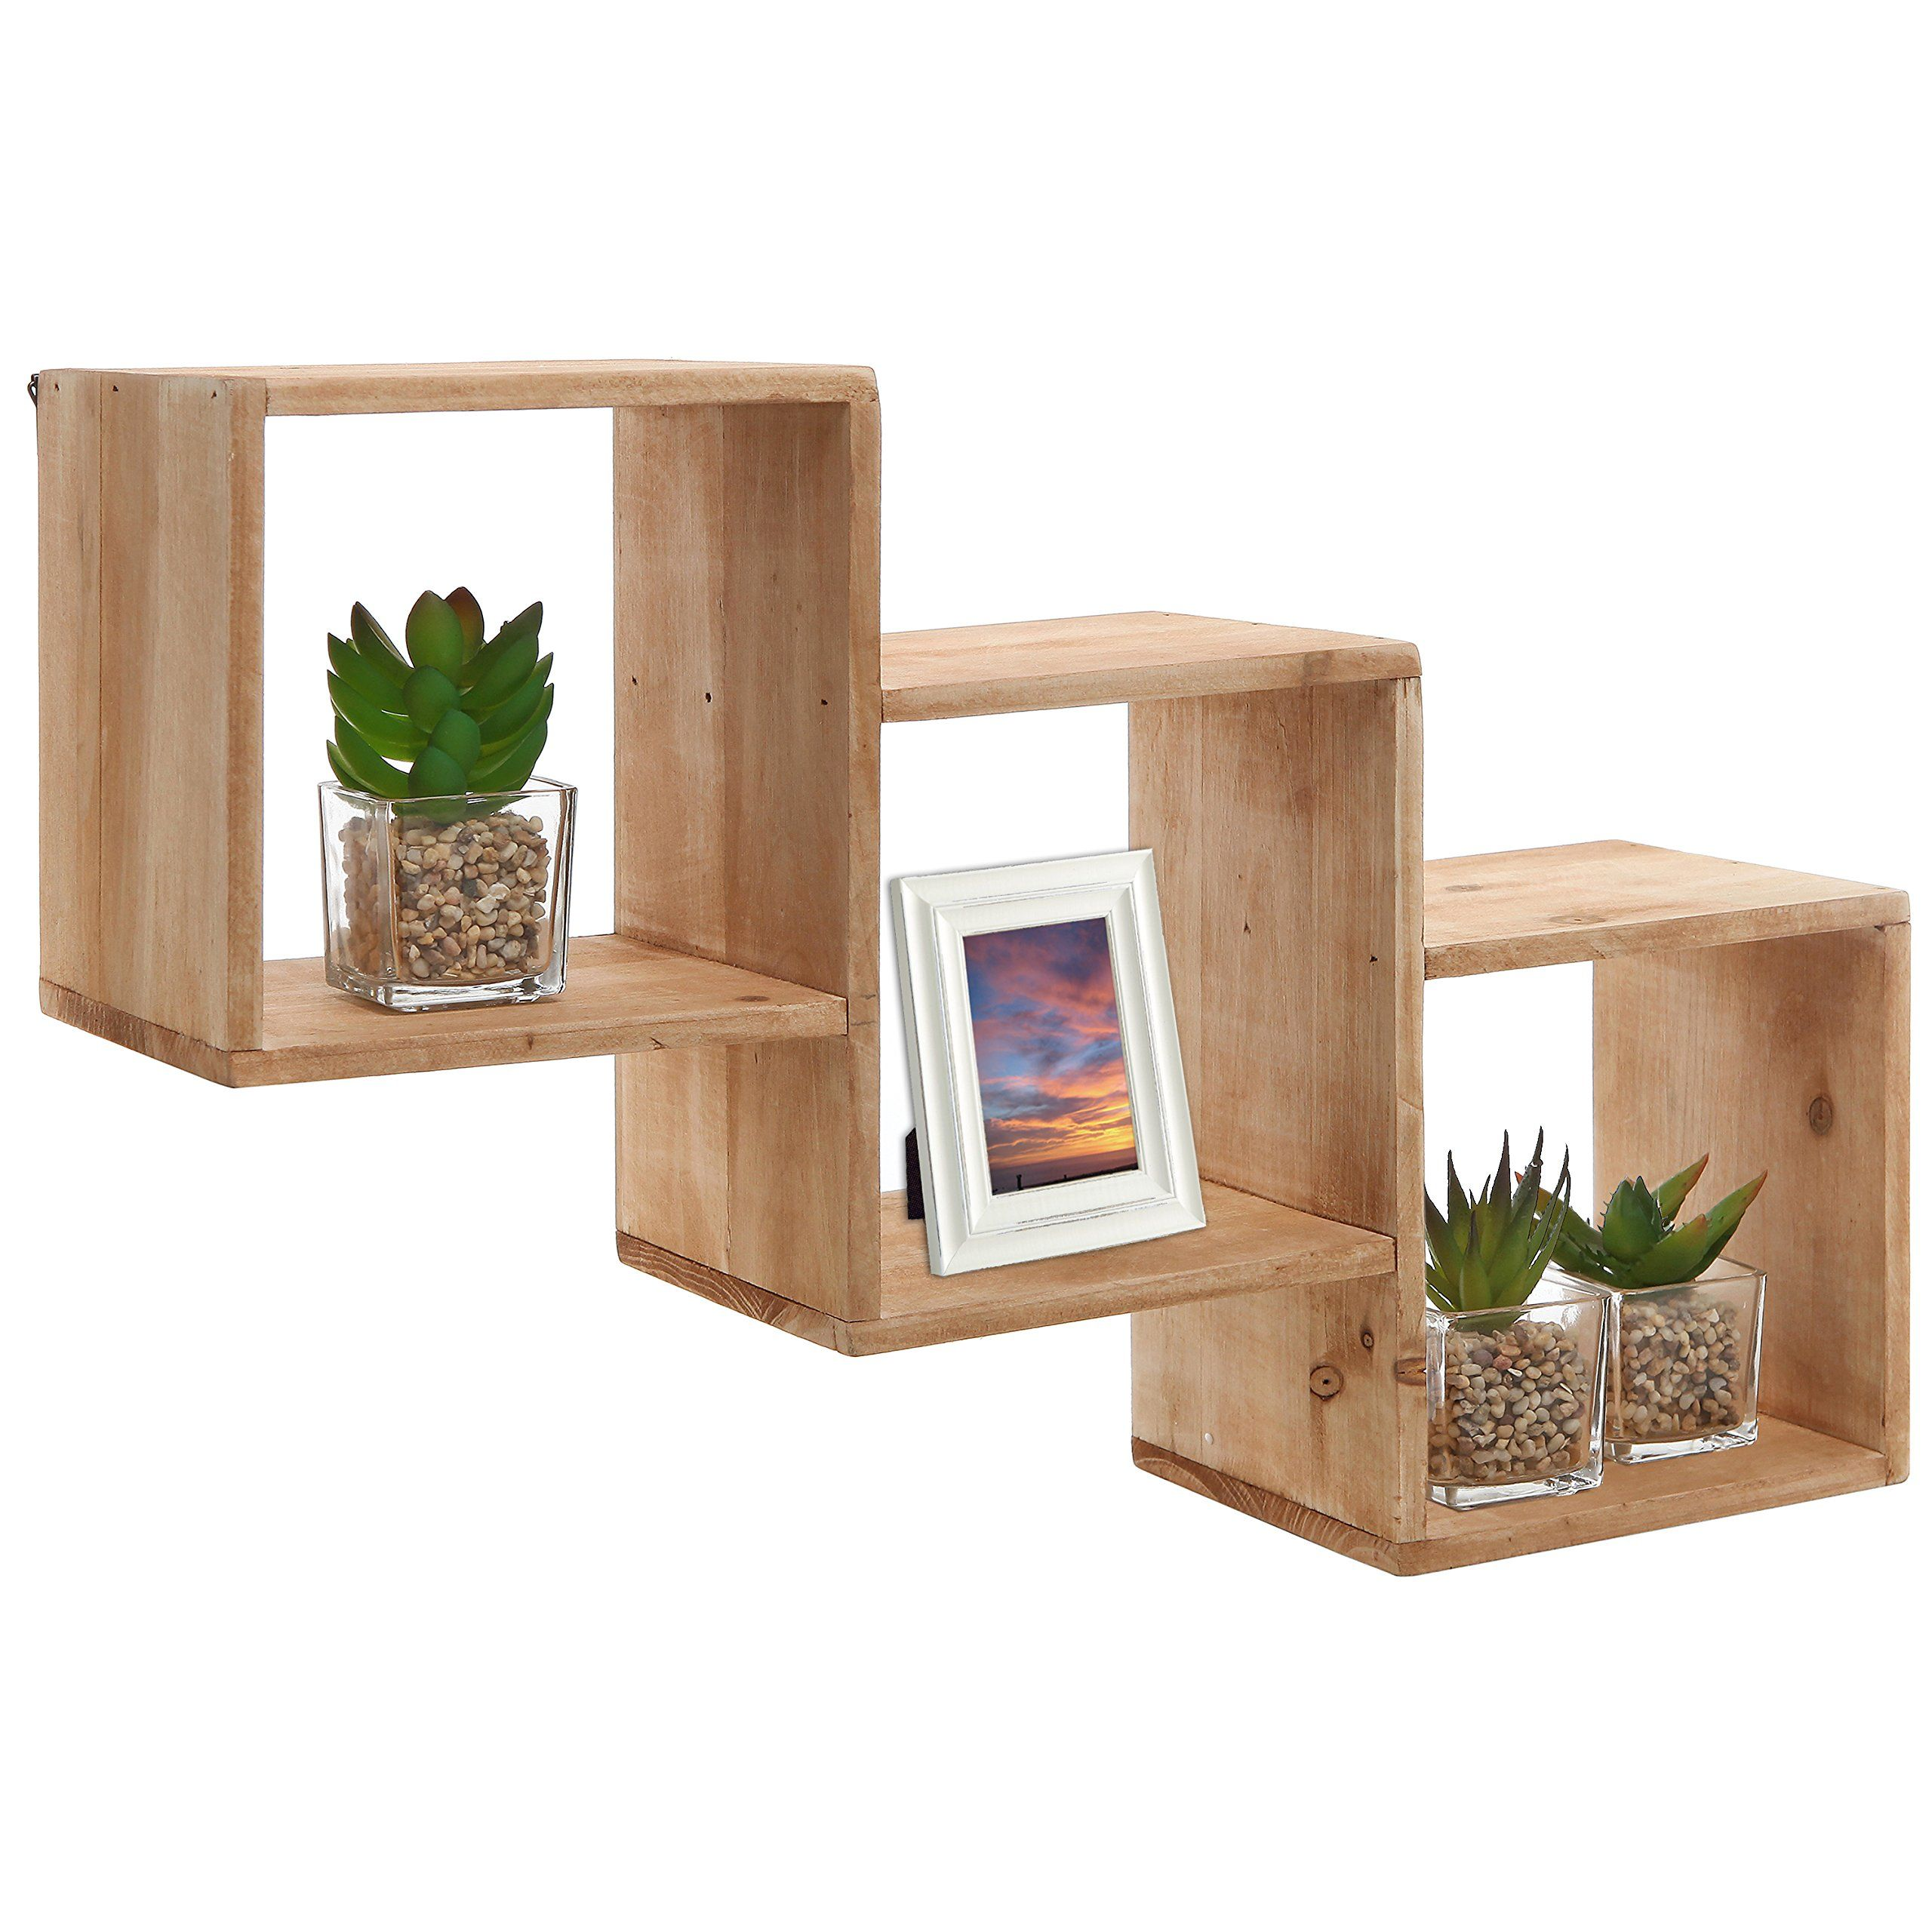 Grande Country Rustic Wall Mounted Unfinished Wood Squarediagonal Storage Shelves Rack Country Rustic Wall Mounted Unfinished Wood Make Small Square Floating Shelves Small Square Floating Shelf furniture Small Square Floating Shelves